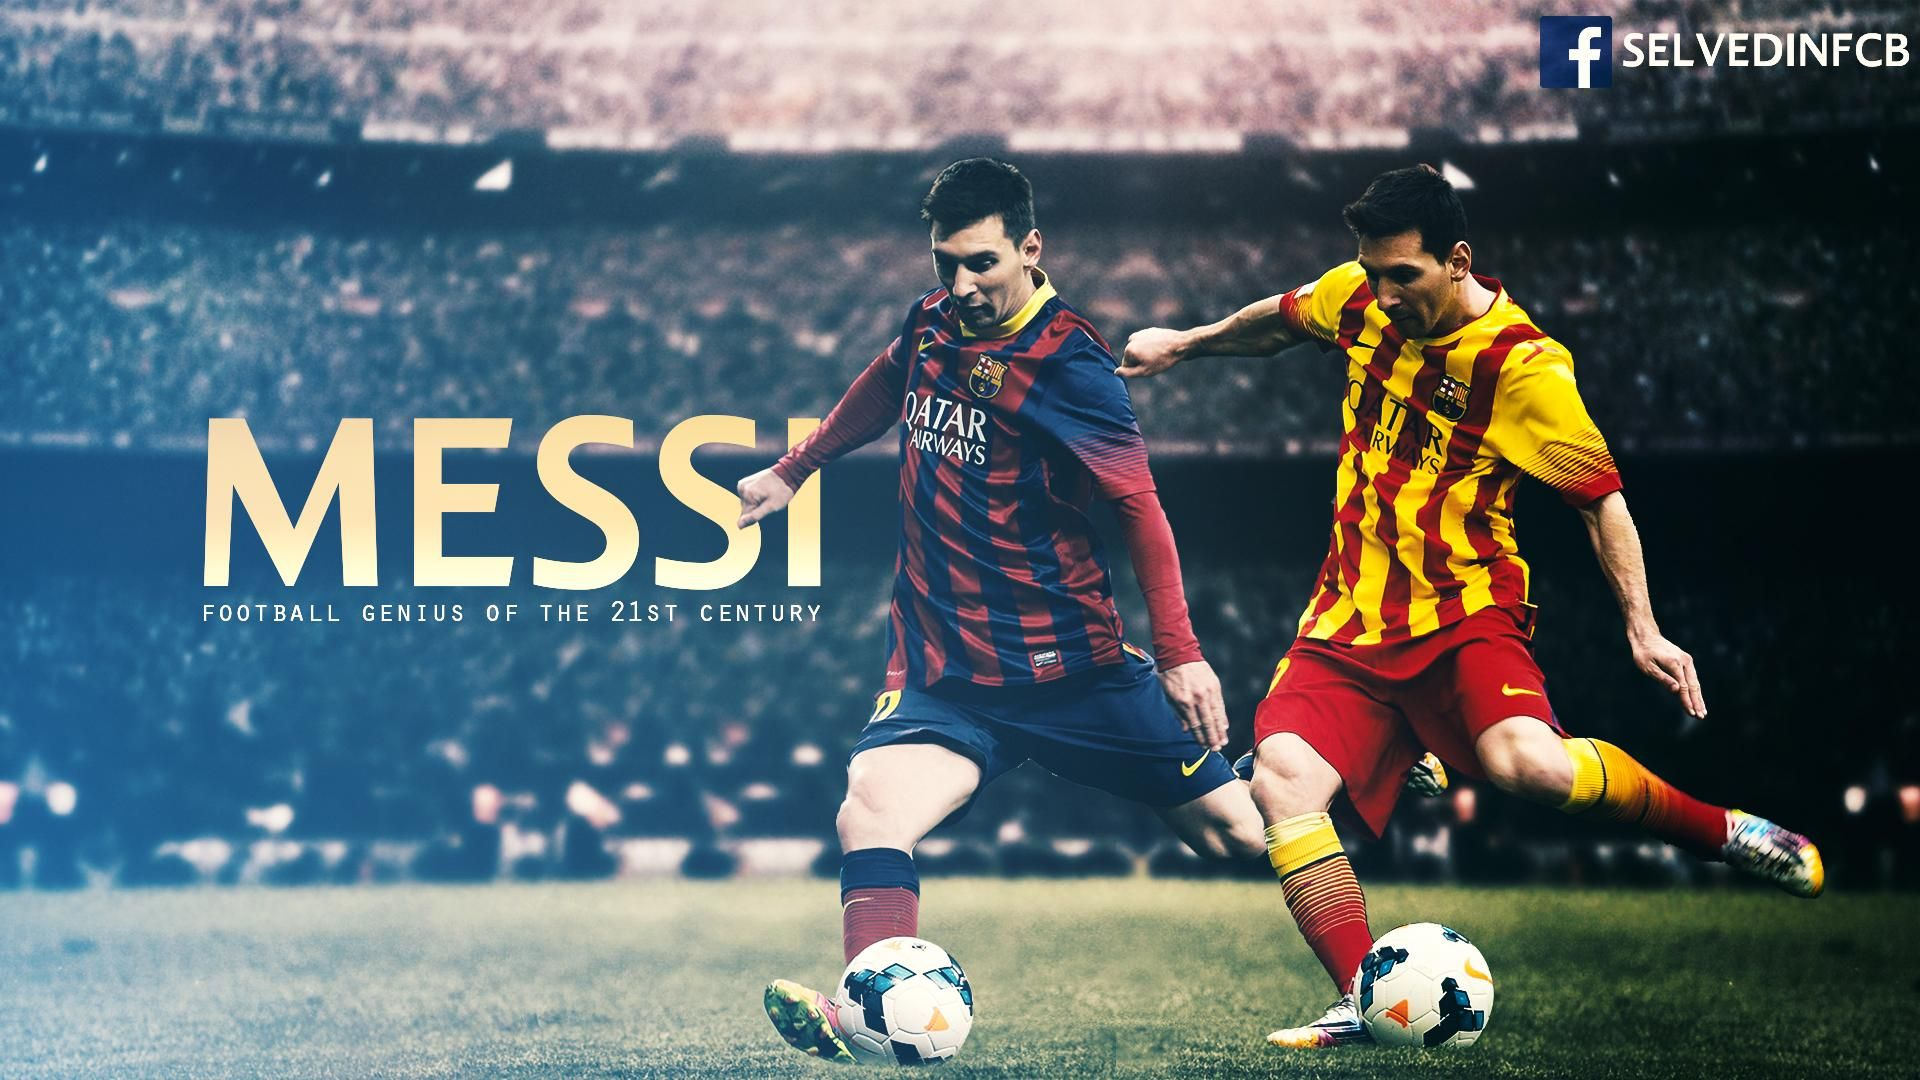 Undefined Wallpaper Pc 64 Wallpapers Adorable Wallpapers Lionel Messi Messi Leo Messi